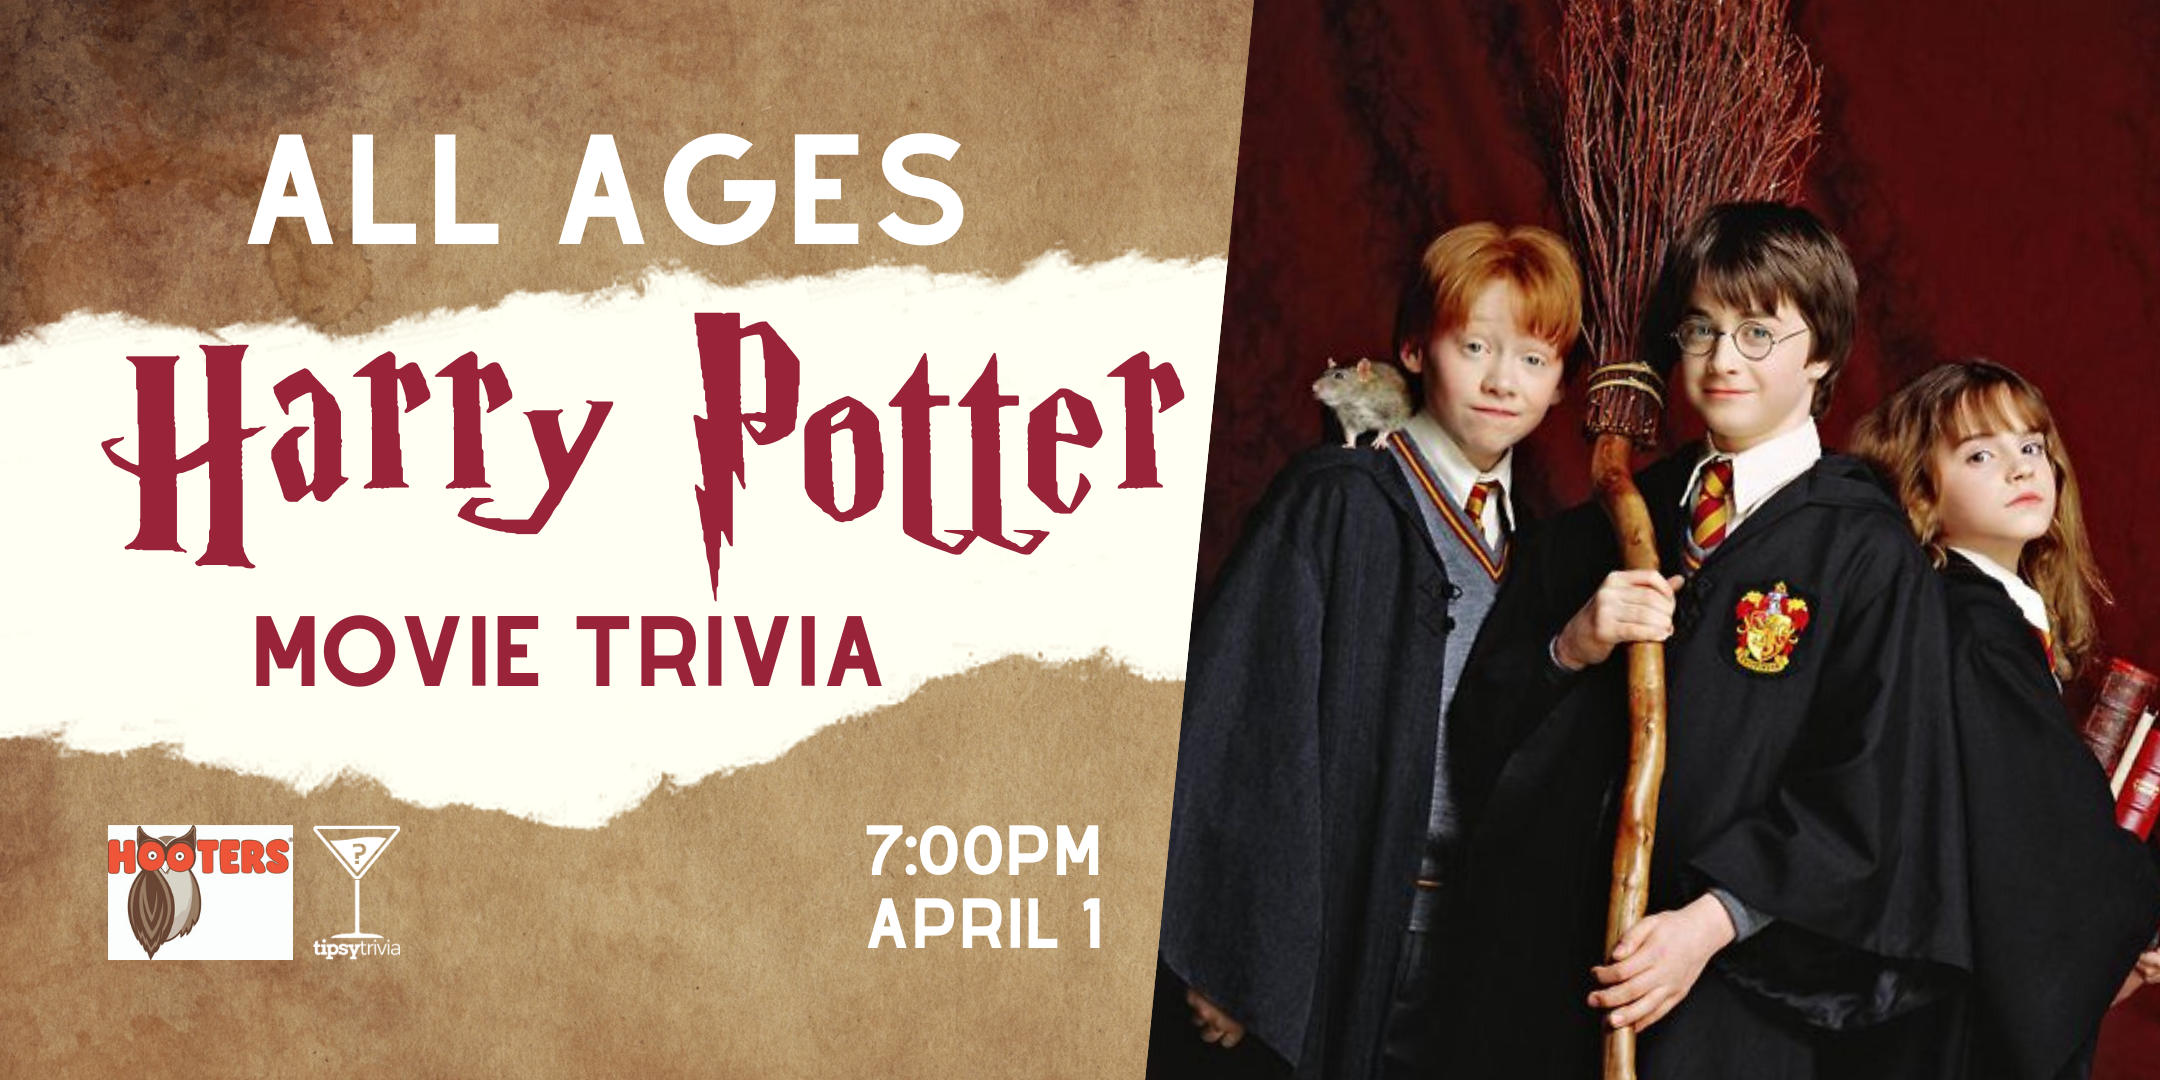 ALL AGES Harry Potter Trivia - April 1, 7:00pm - YWG Hooters